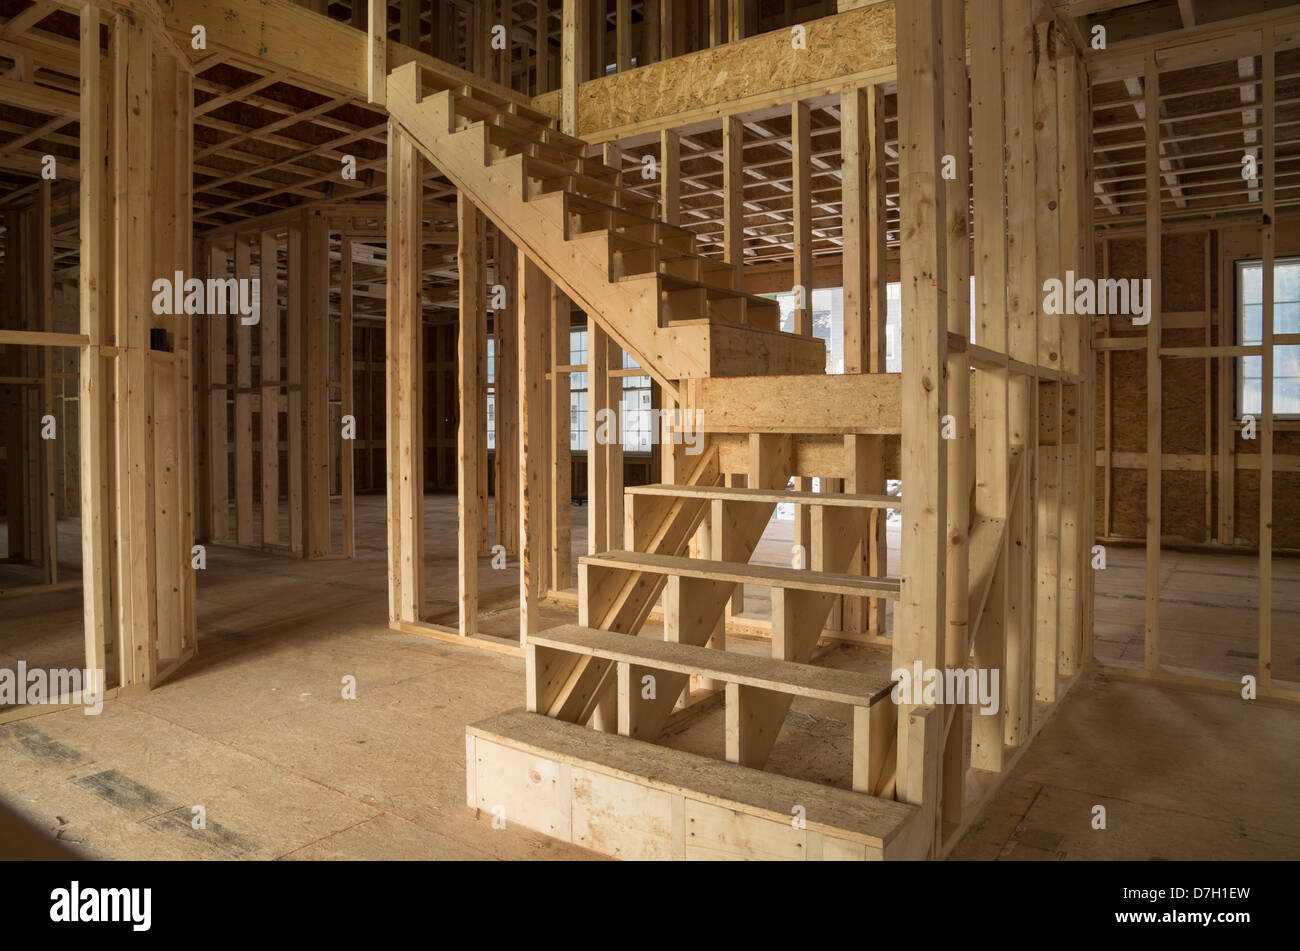 New House Construction Interior With Exposed Framing And Stairs   Stock  Image